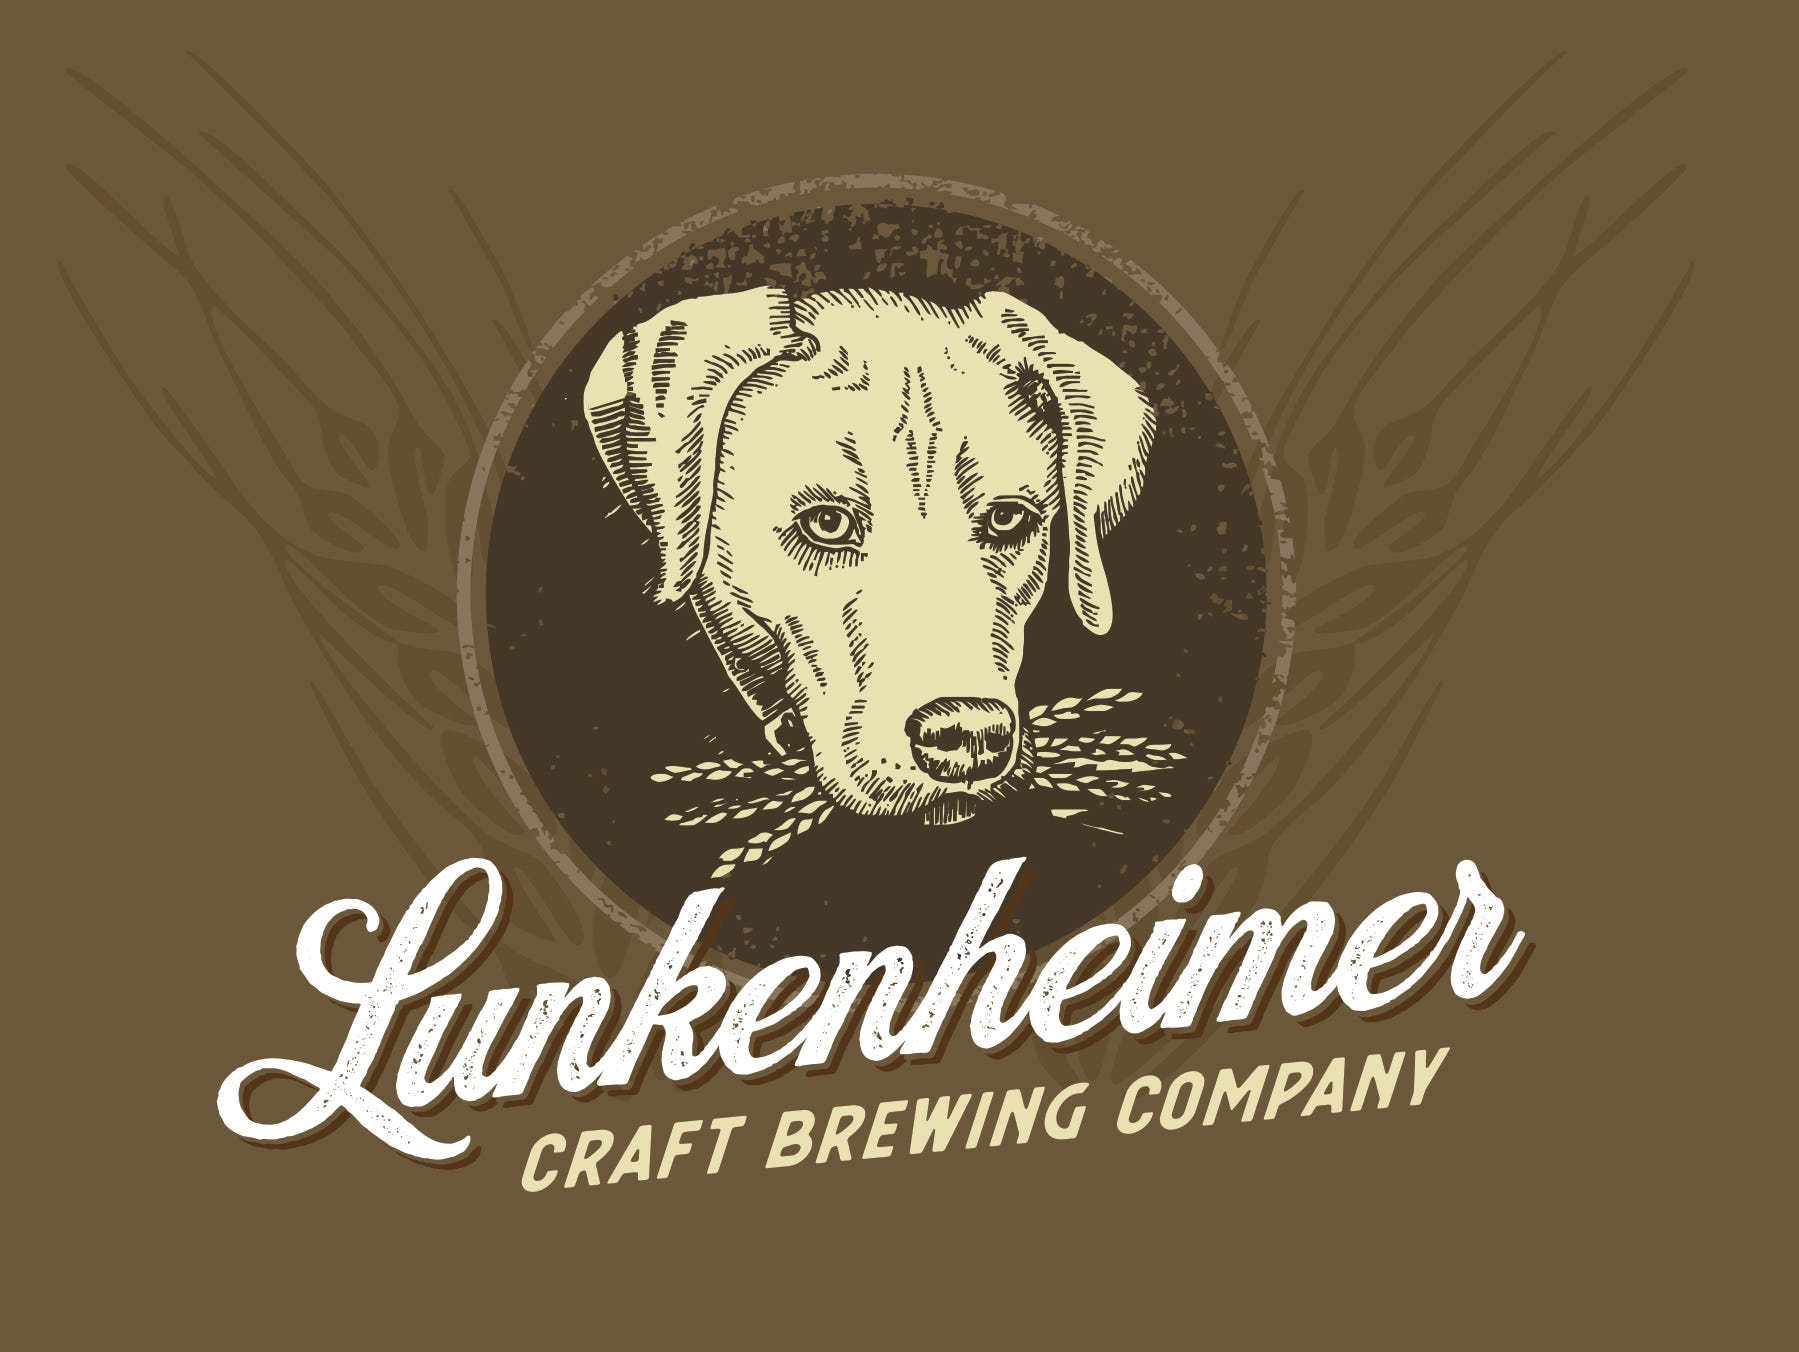 Lunkenheimer Craft Brewing's new logo.